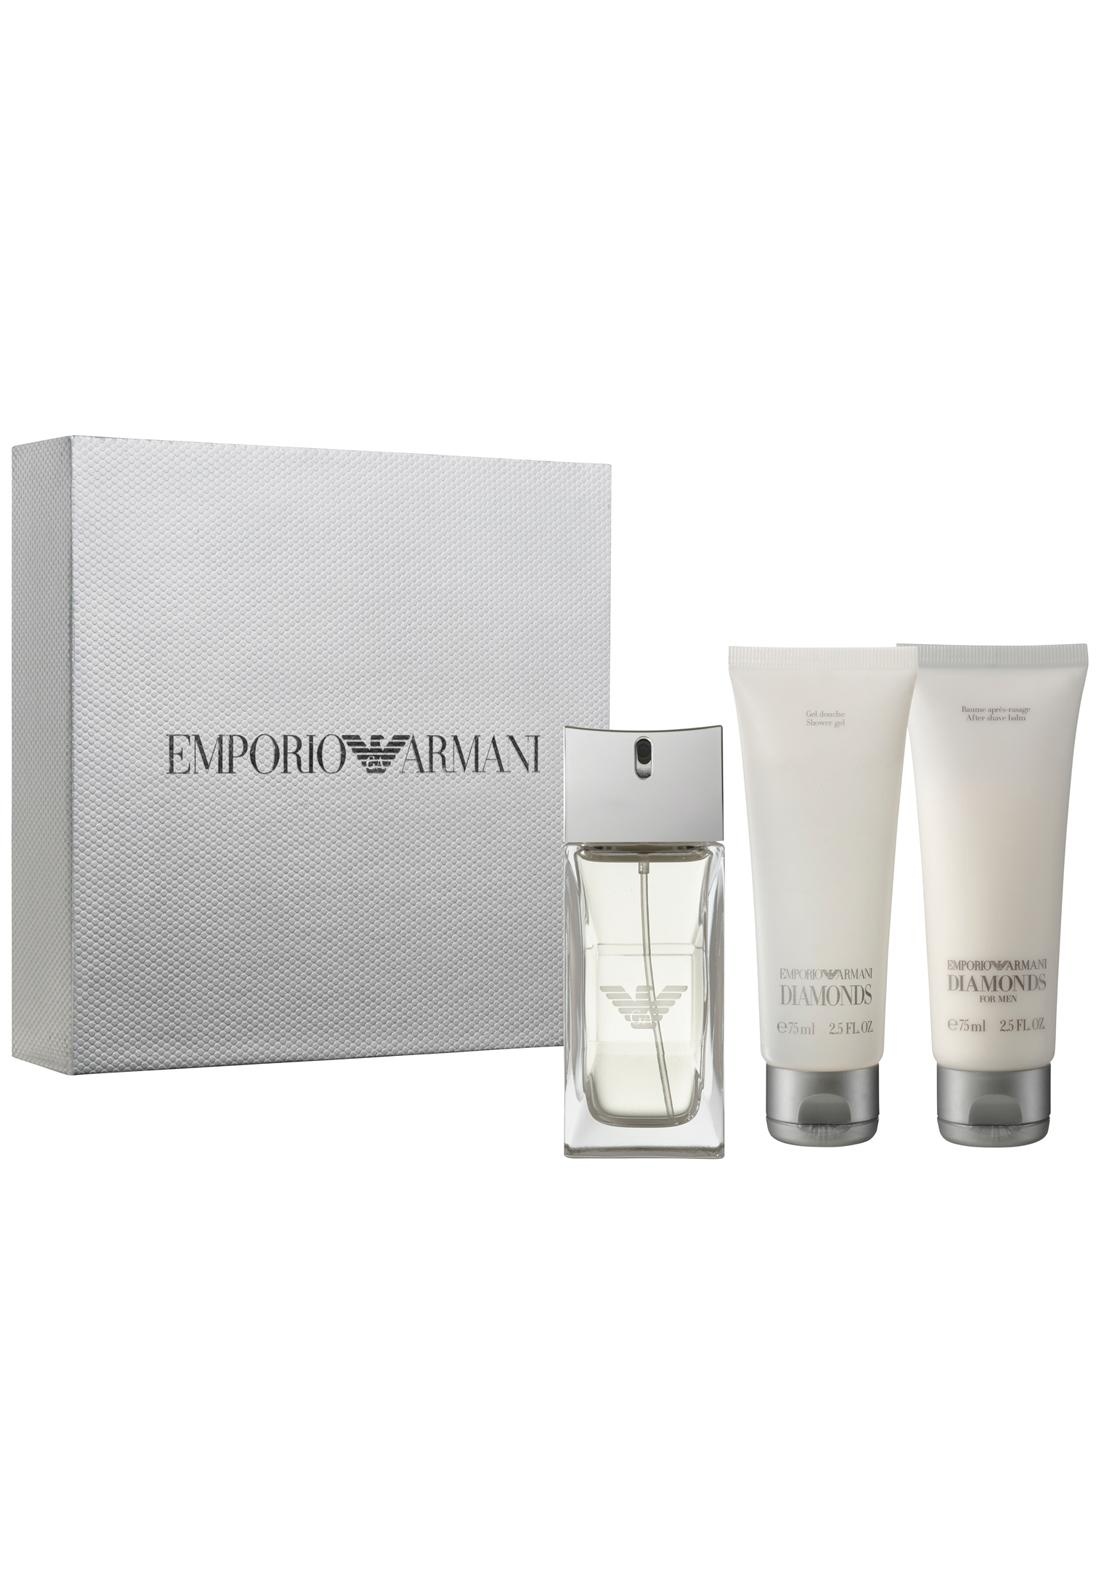 Emporio Armani Diamonds For Men Gift Set